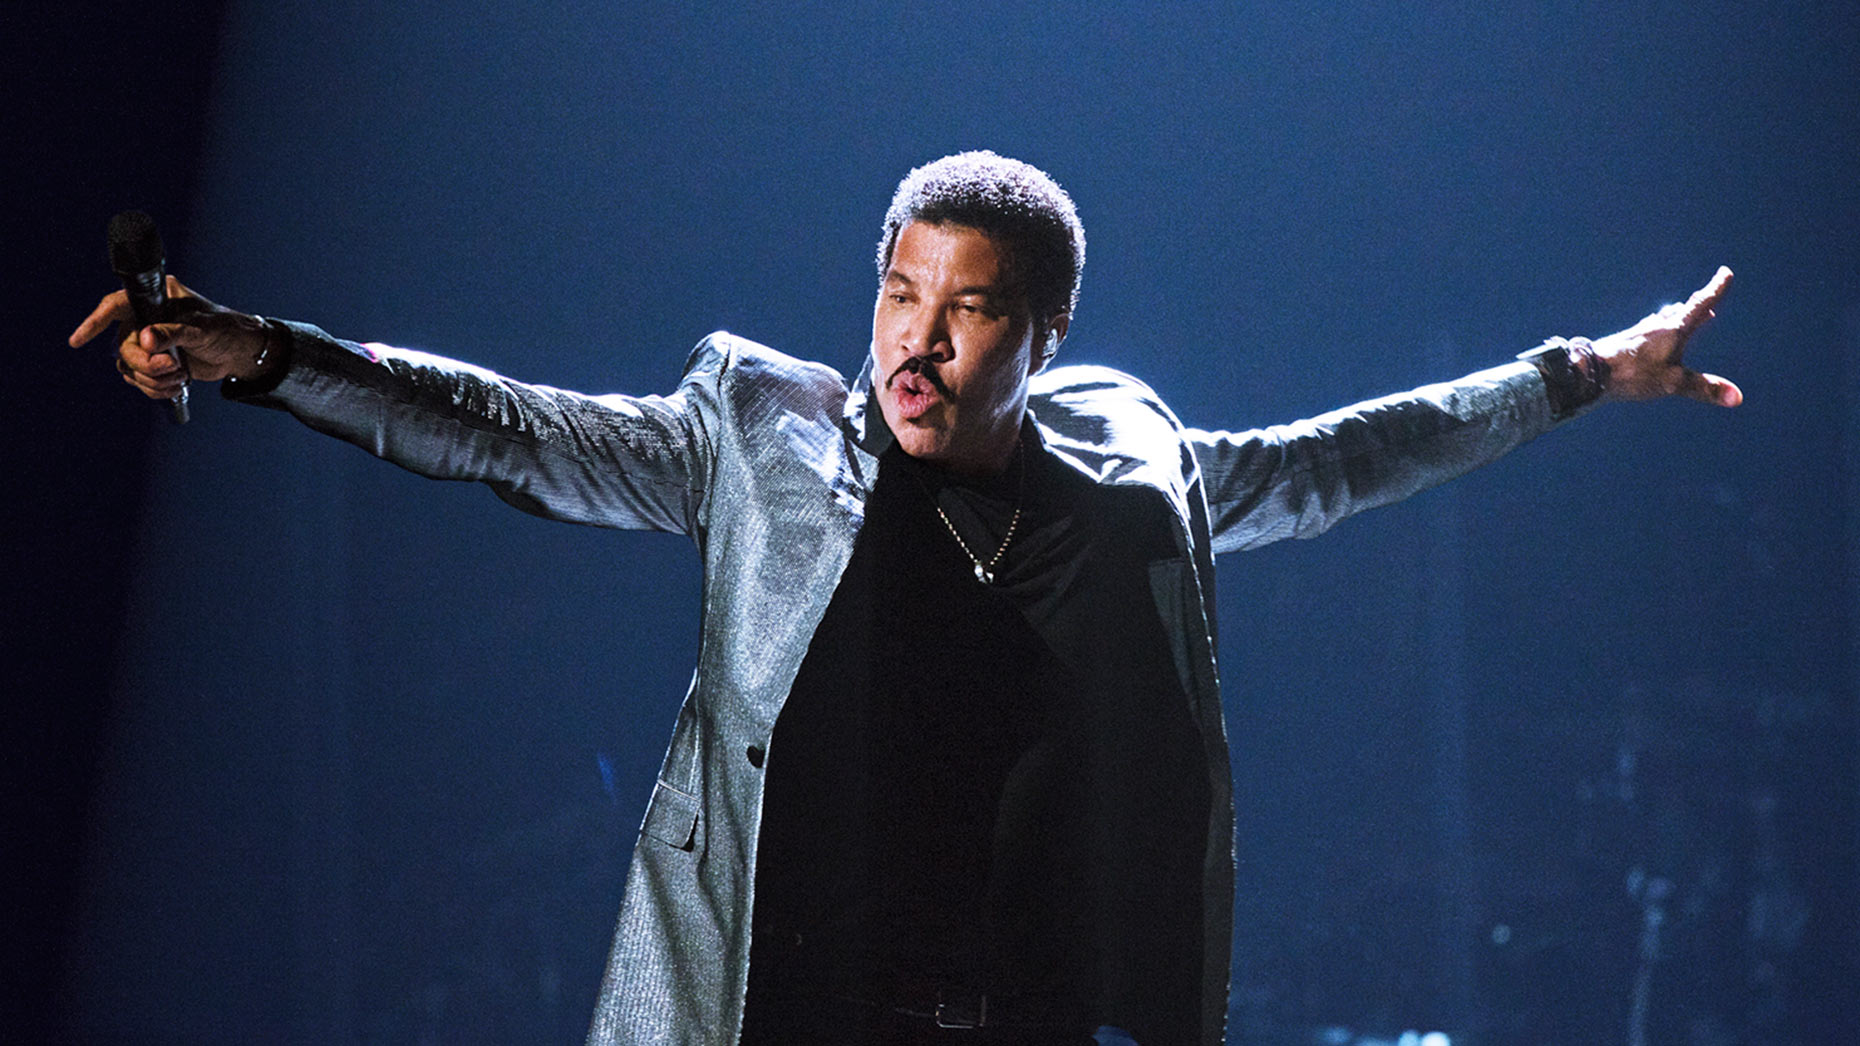 Lionel Richie to perform in Northamptonshire this summer